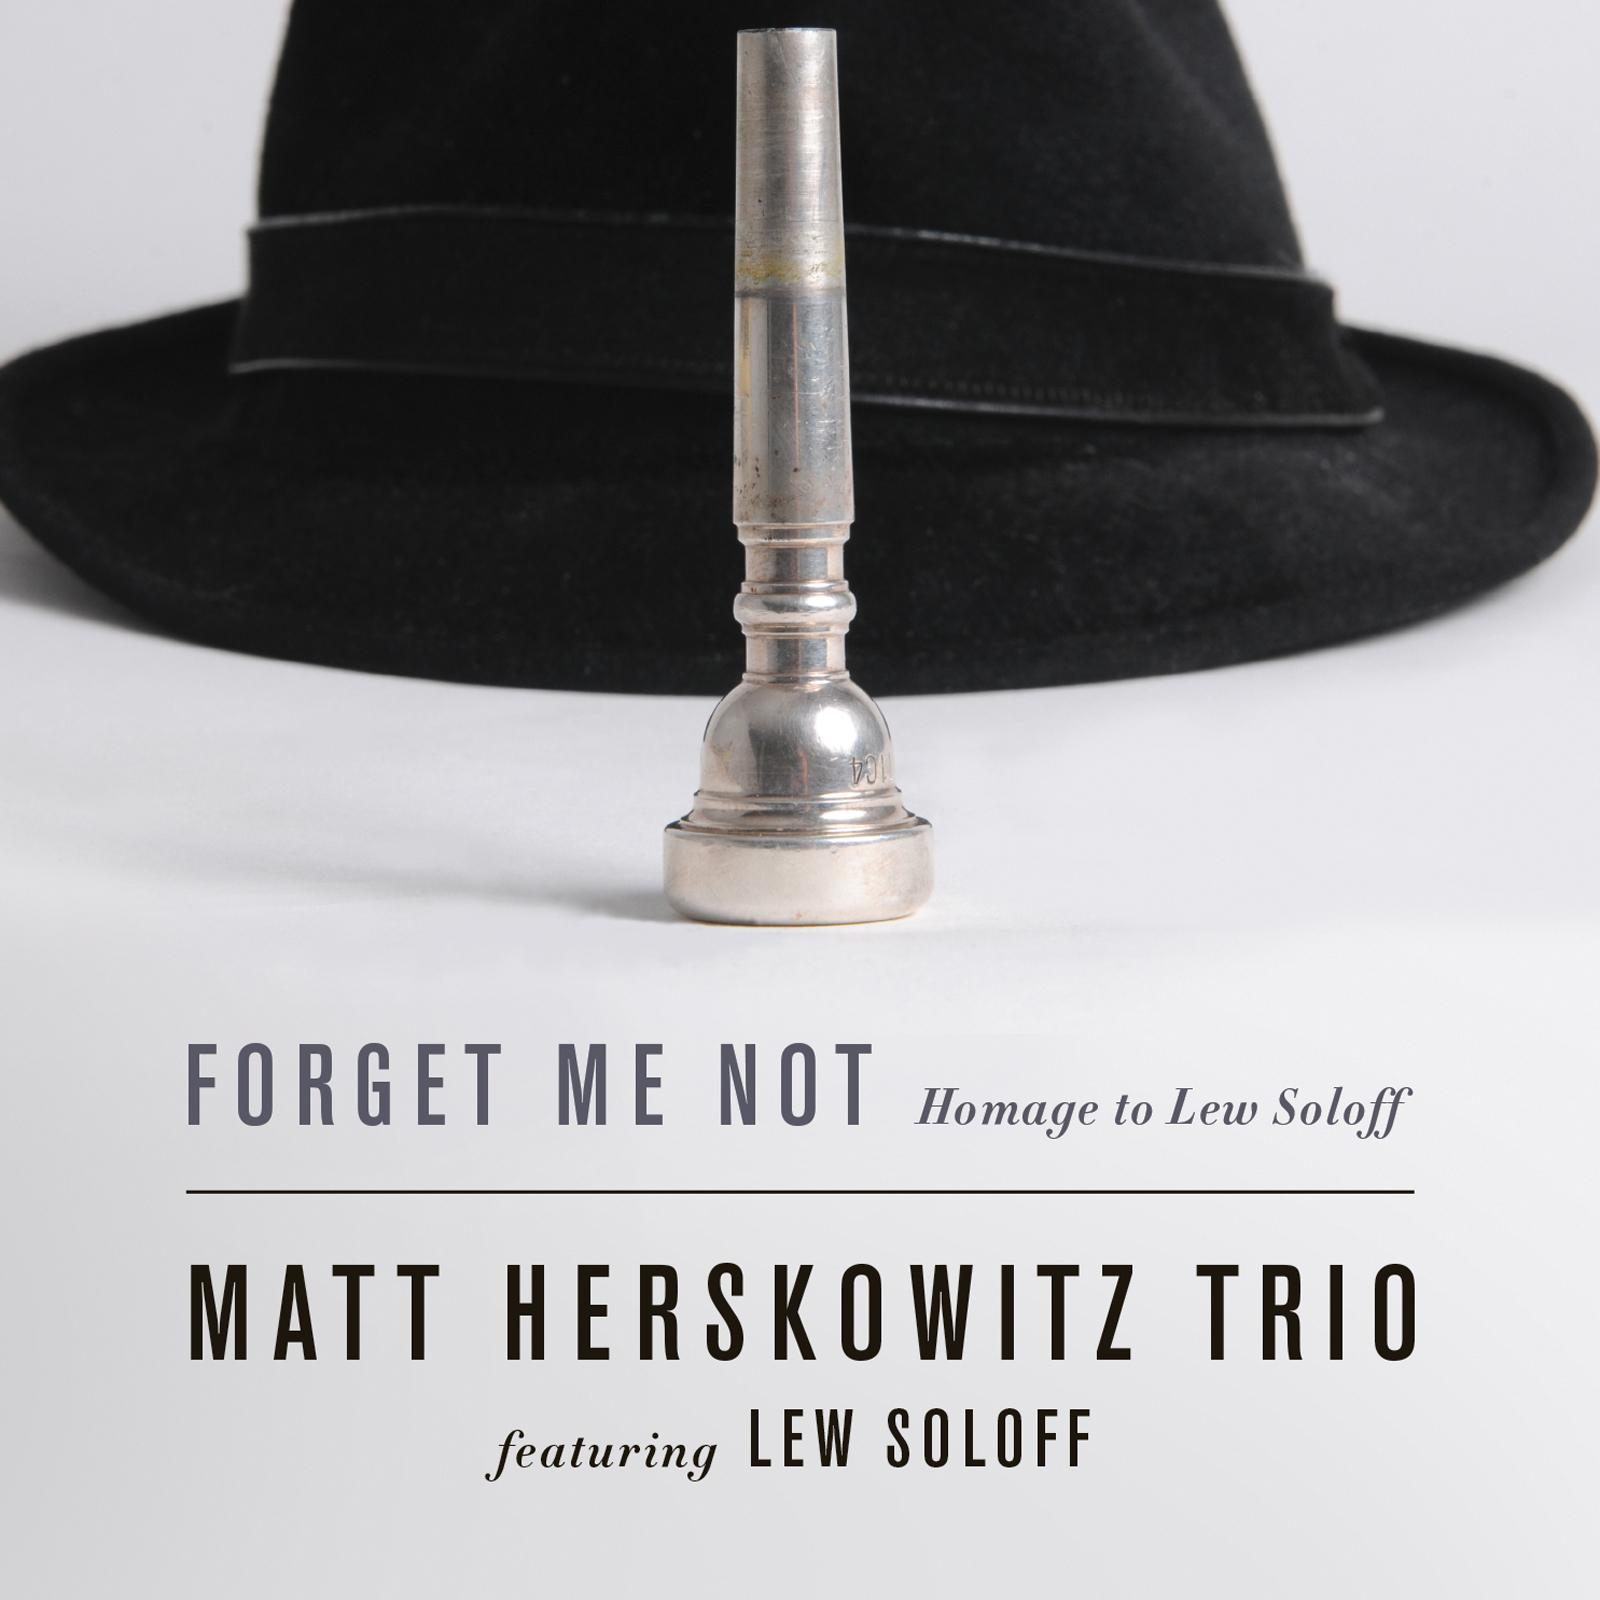 Cover Album - Forget Me Not - Homage to Lew Soloff